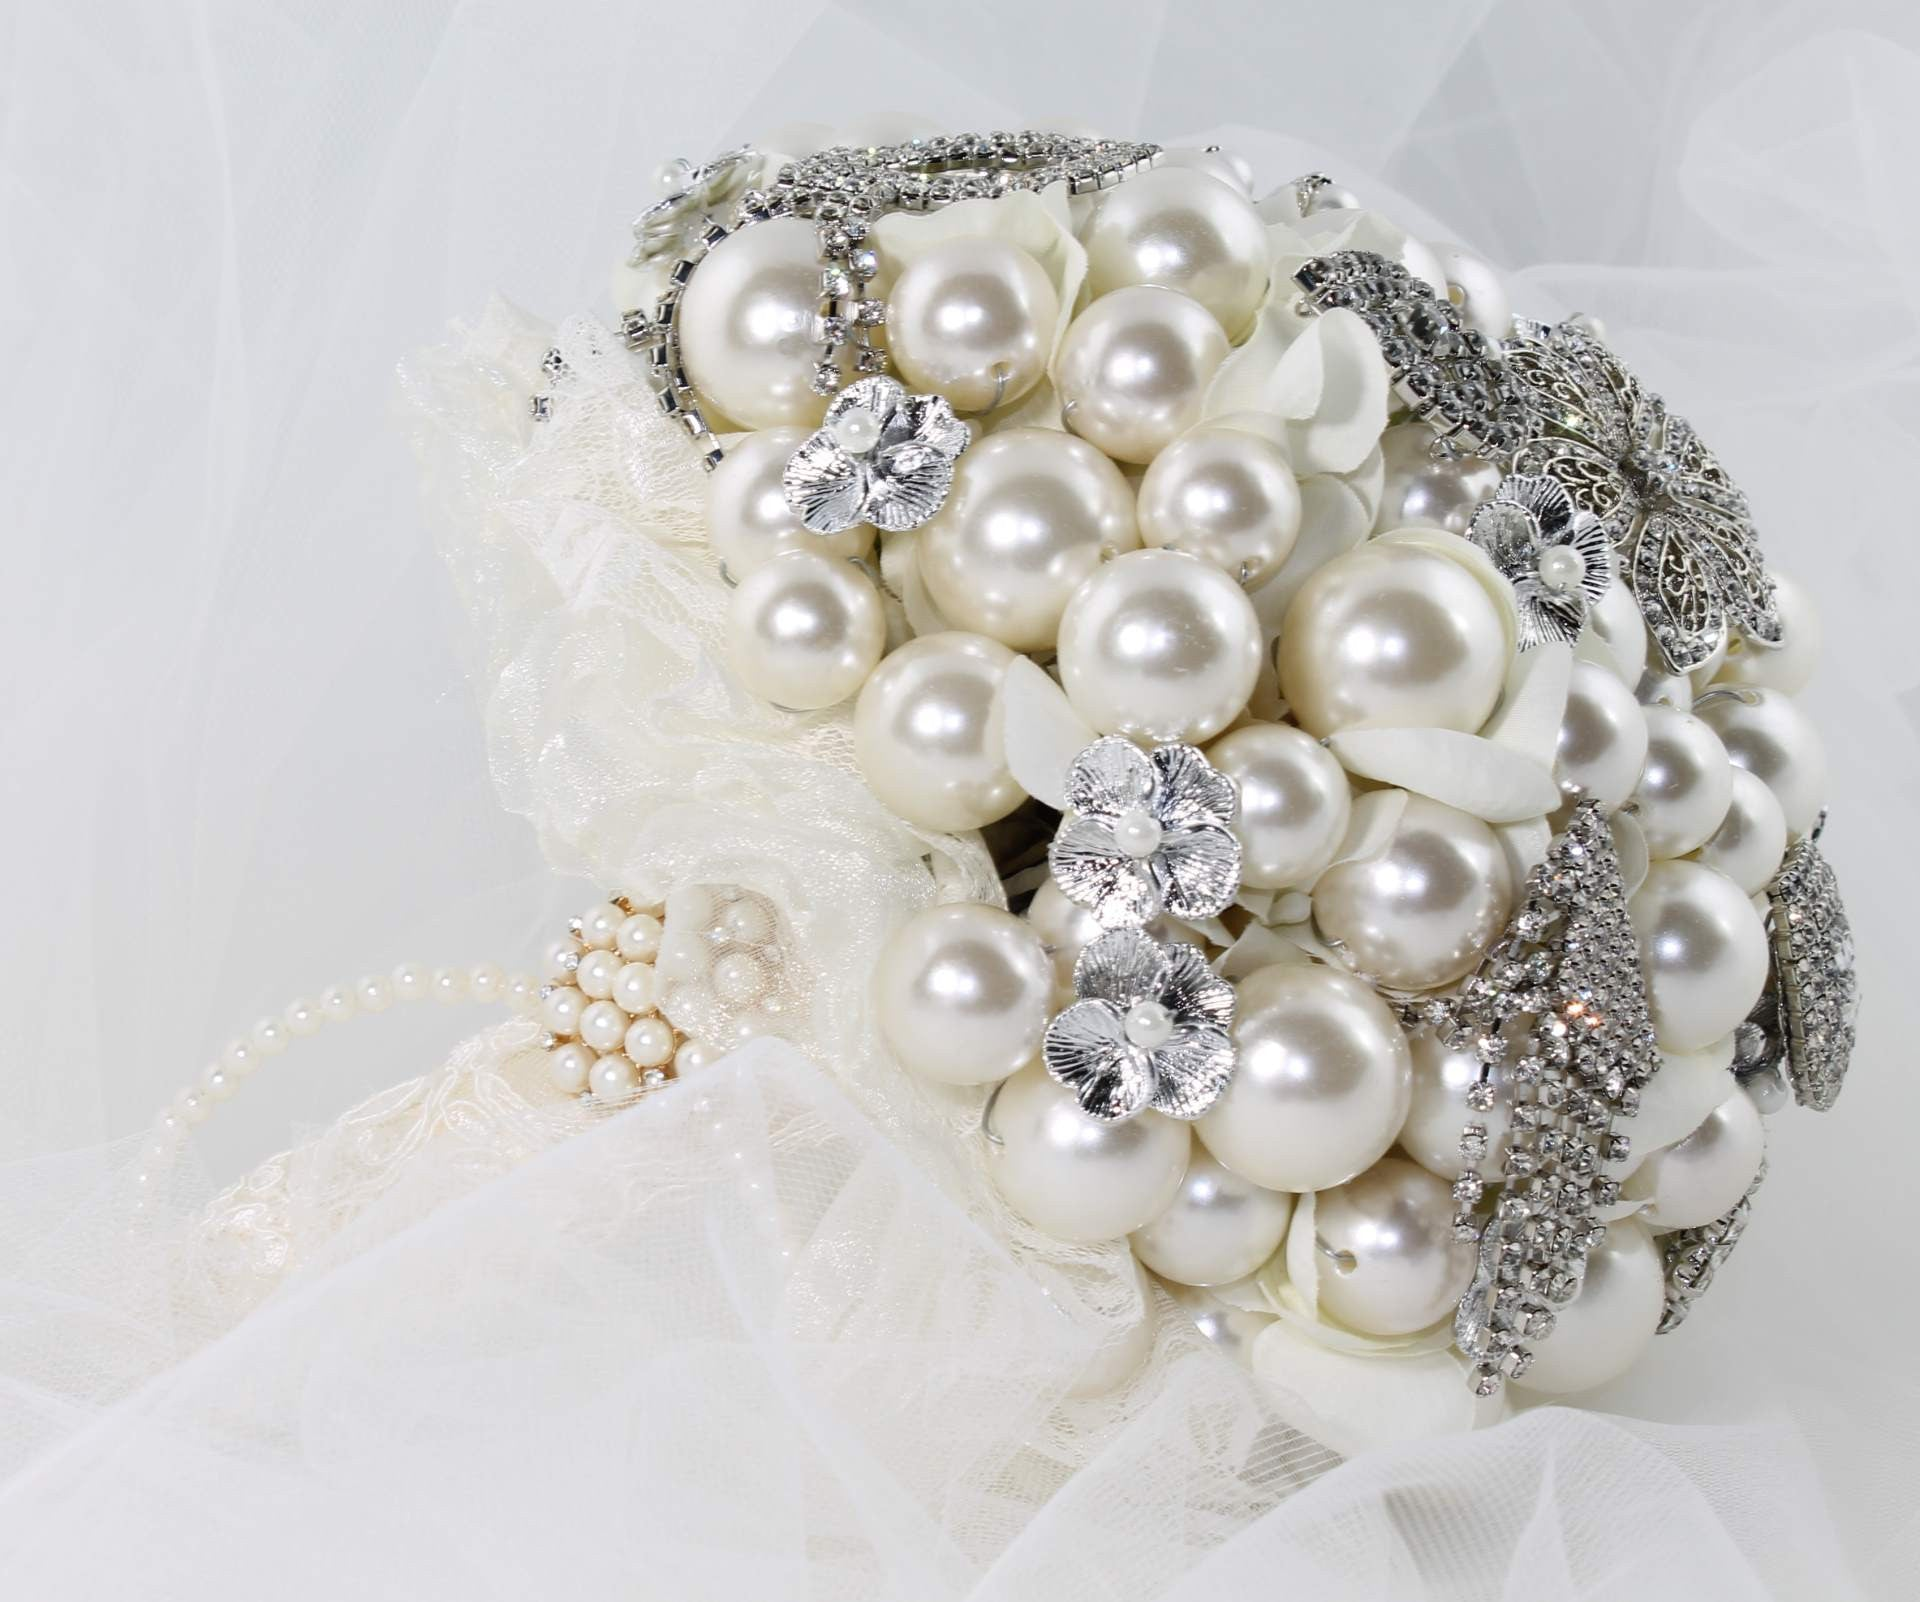 Bridal Brooch Bouquet Handmade Silver with Faux Pearls - Bride Glamor